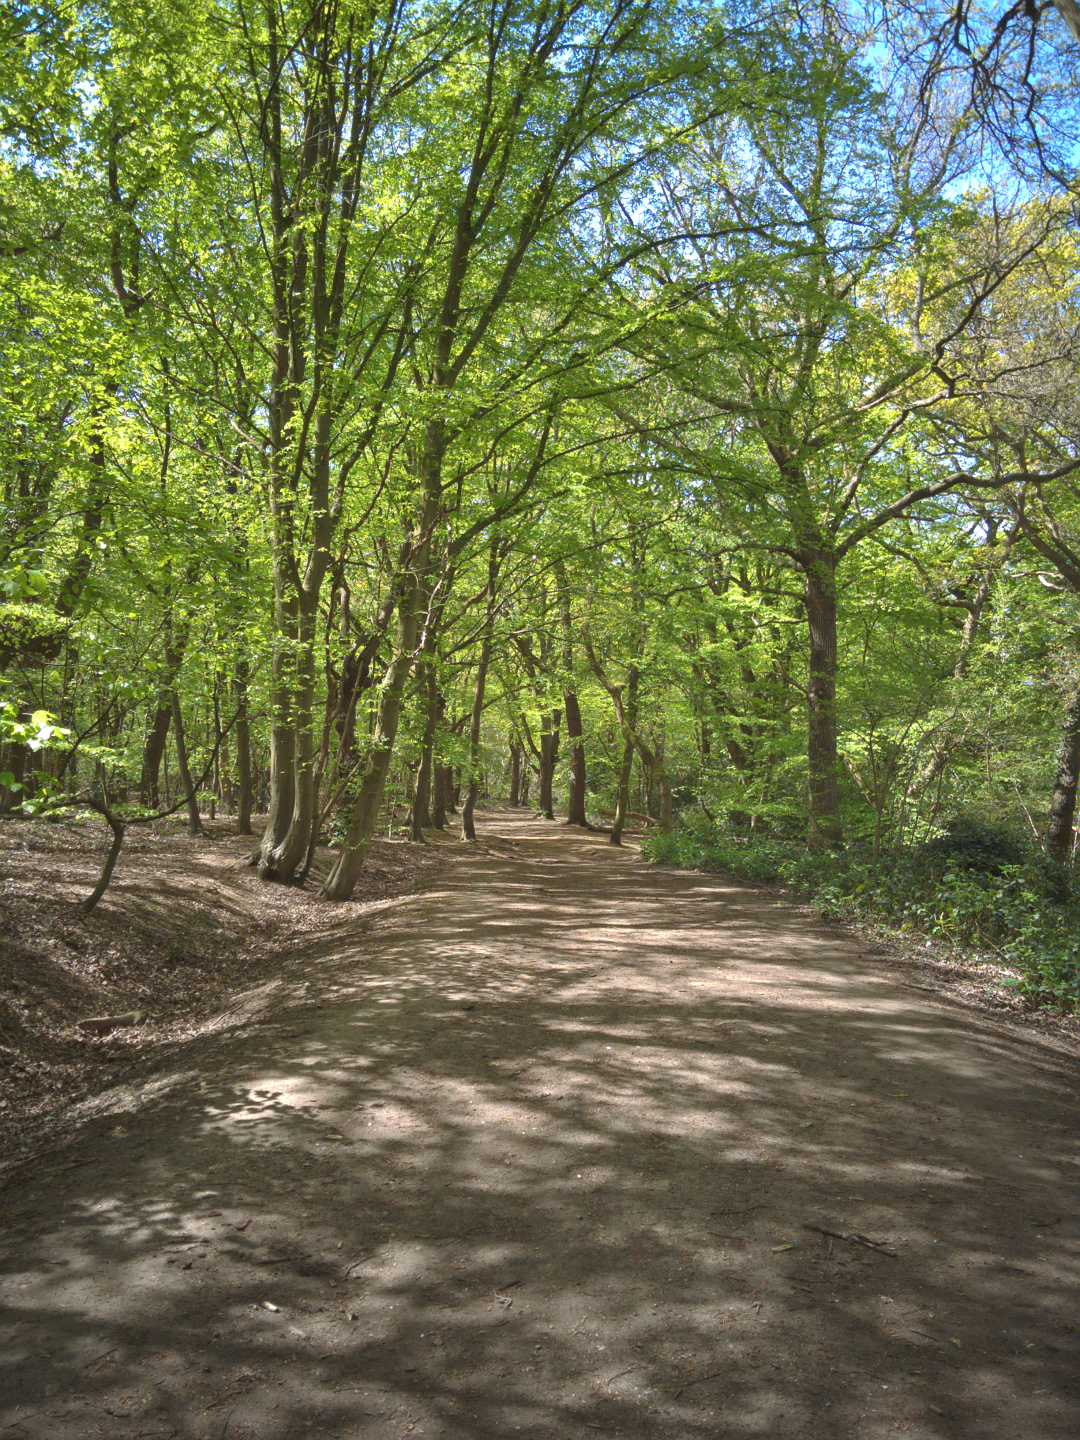 Wimbledon Common (4 May 2016)